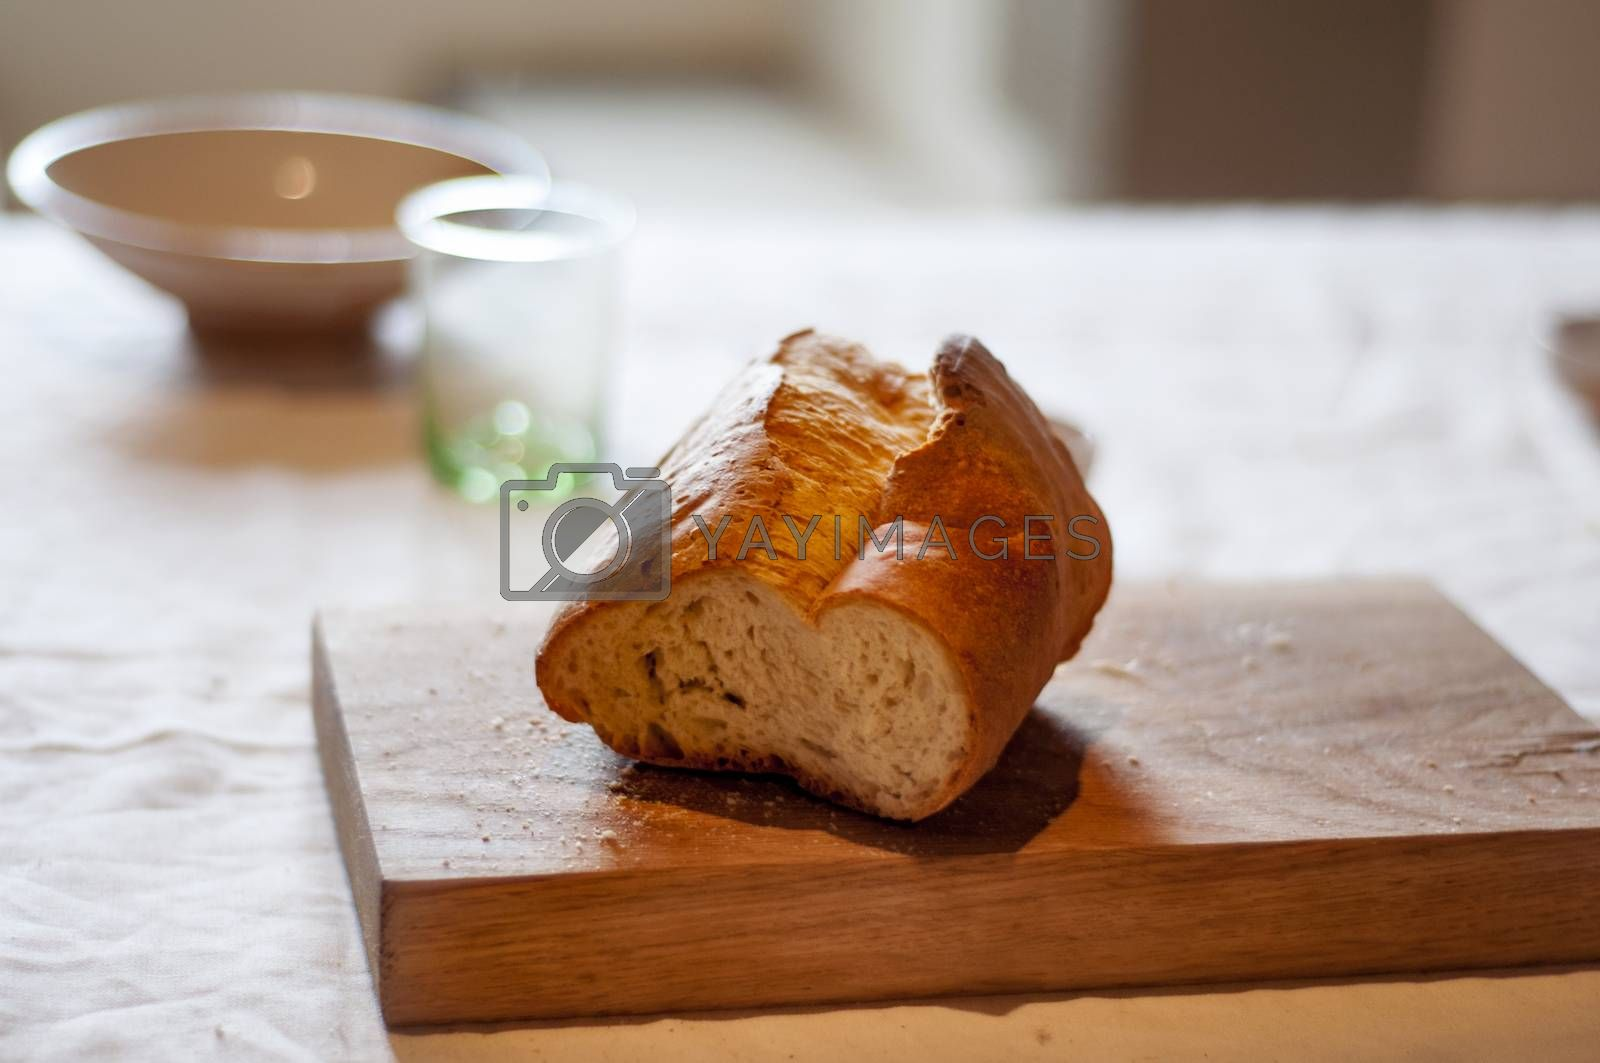 a piece of bread on a wooden cutting board